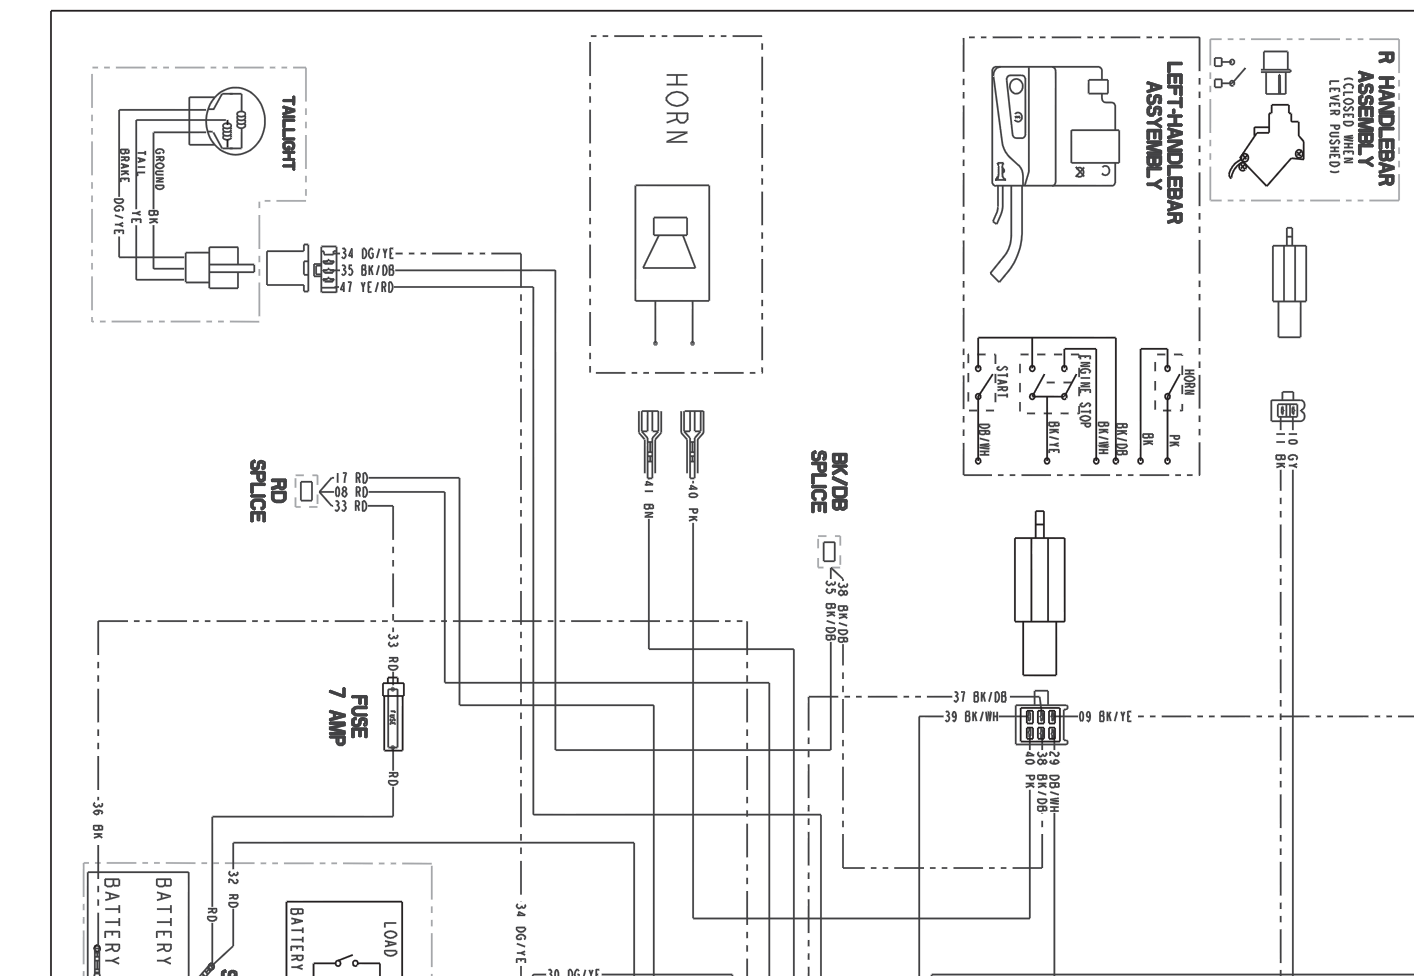 polaris ranger wiring diagram wirdig ford f 150 v6 engine on 2003 polaris ranger 500 wiring